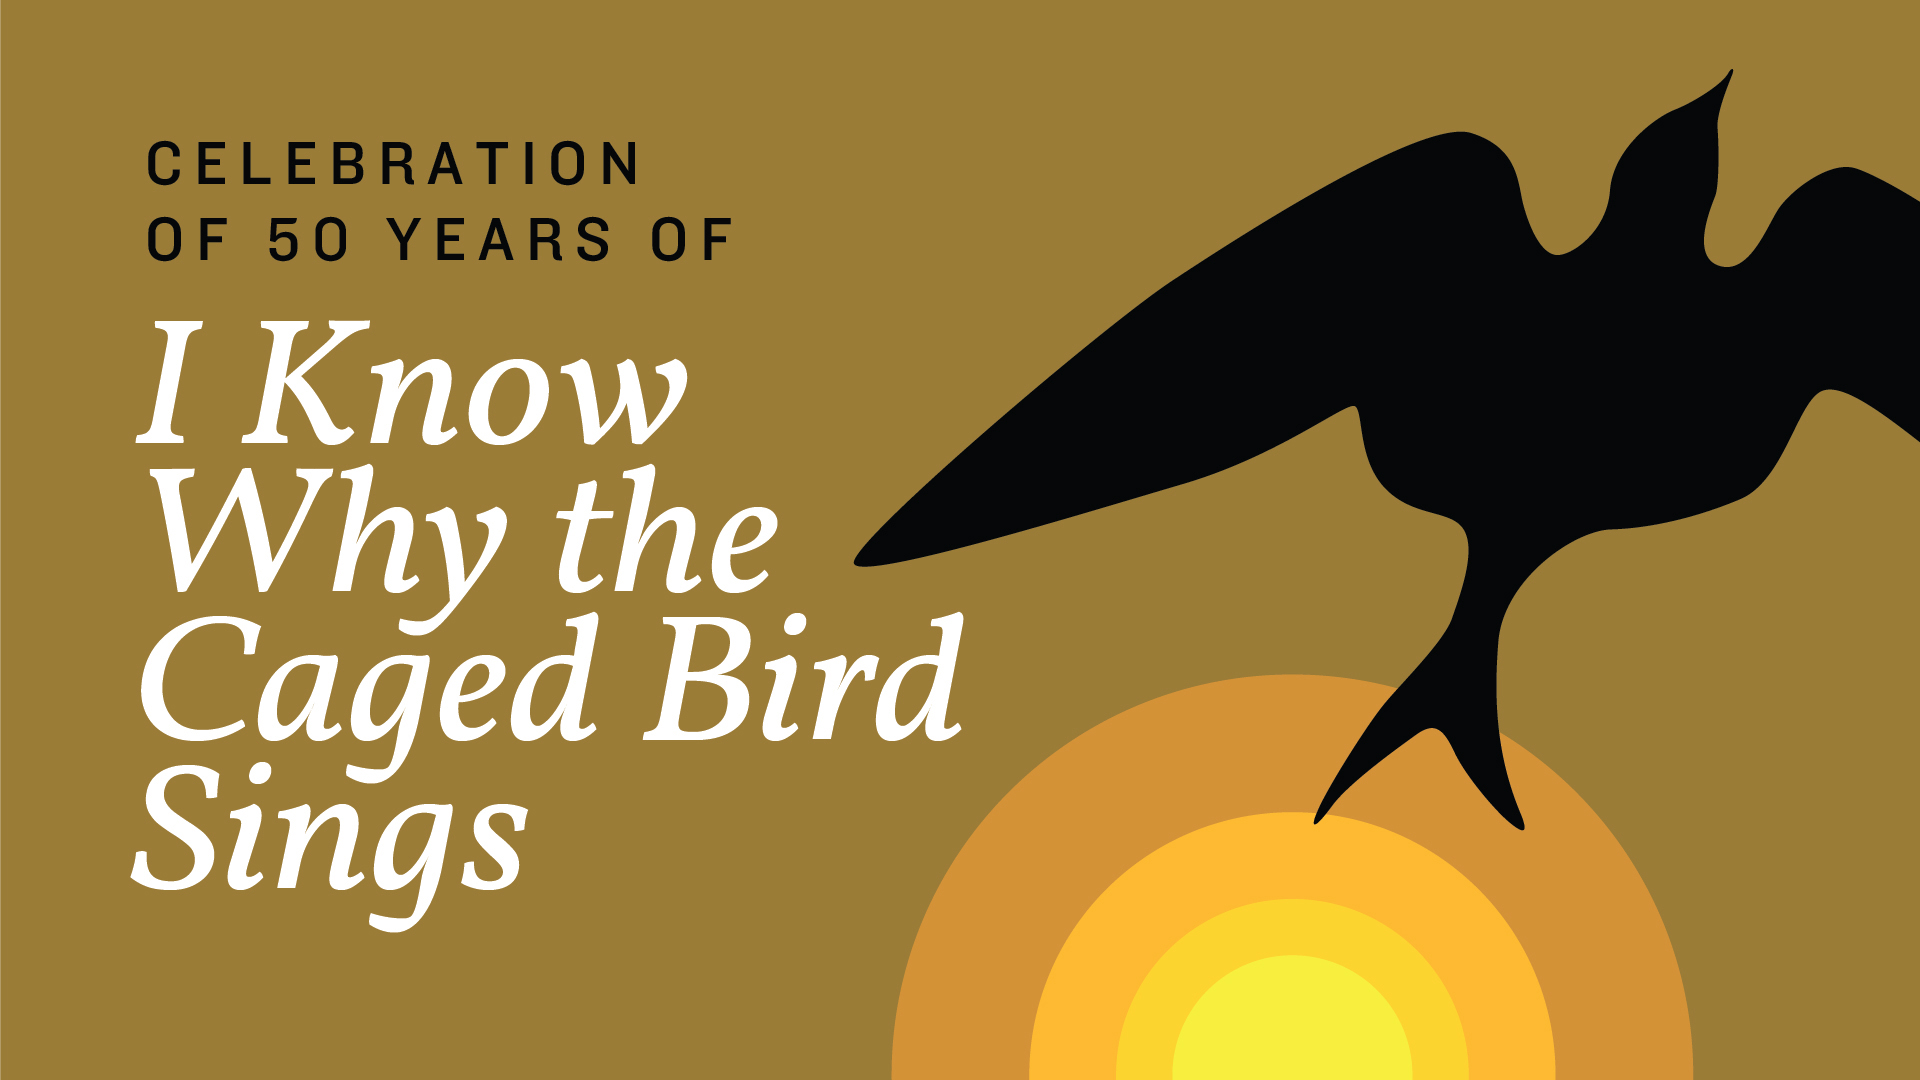 """Celebration of Dr. Maya Angelou and 50 Years of """"I Know Why the Caged Bird Sings"""""""